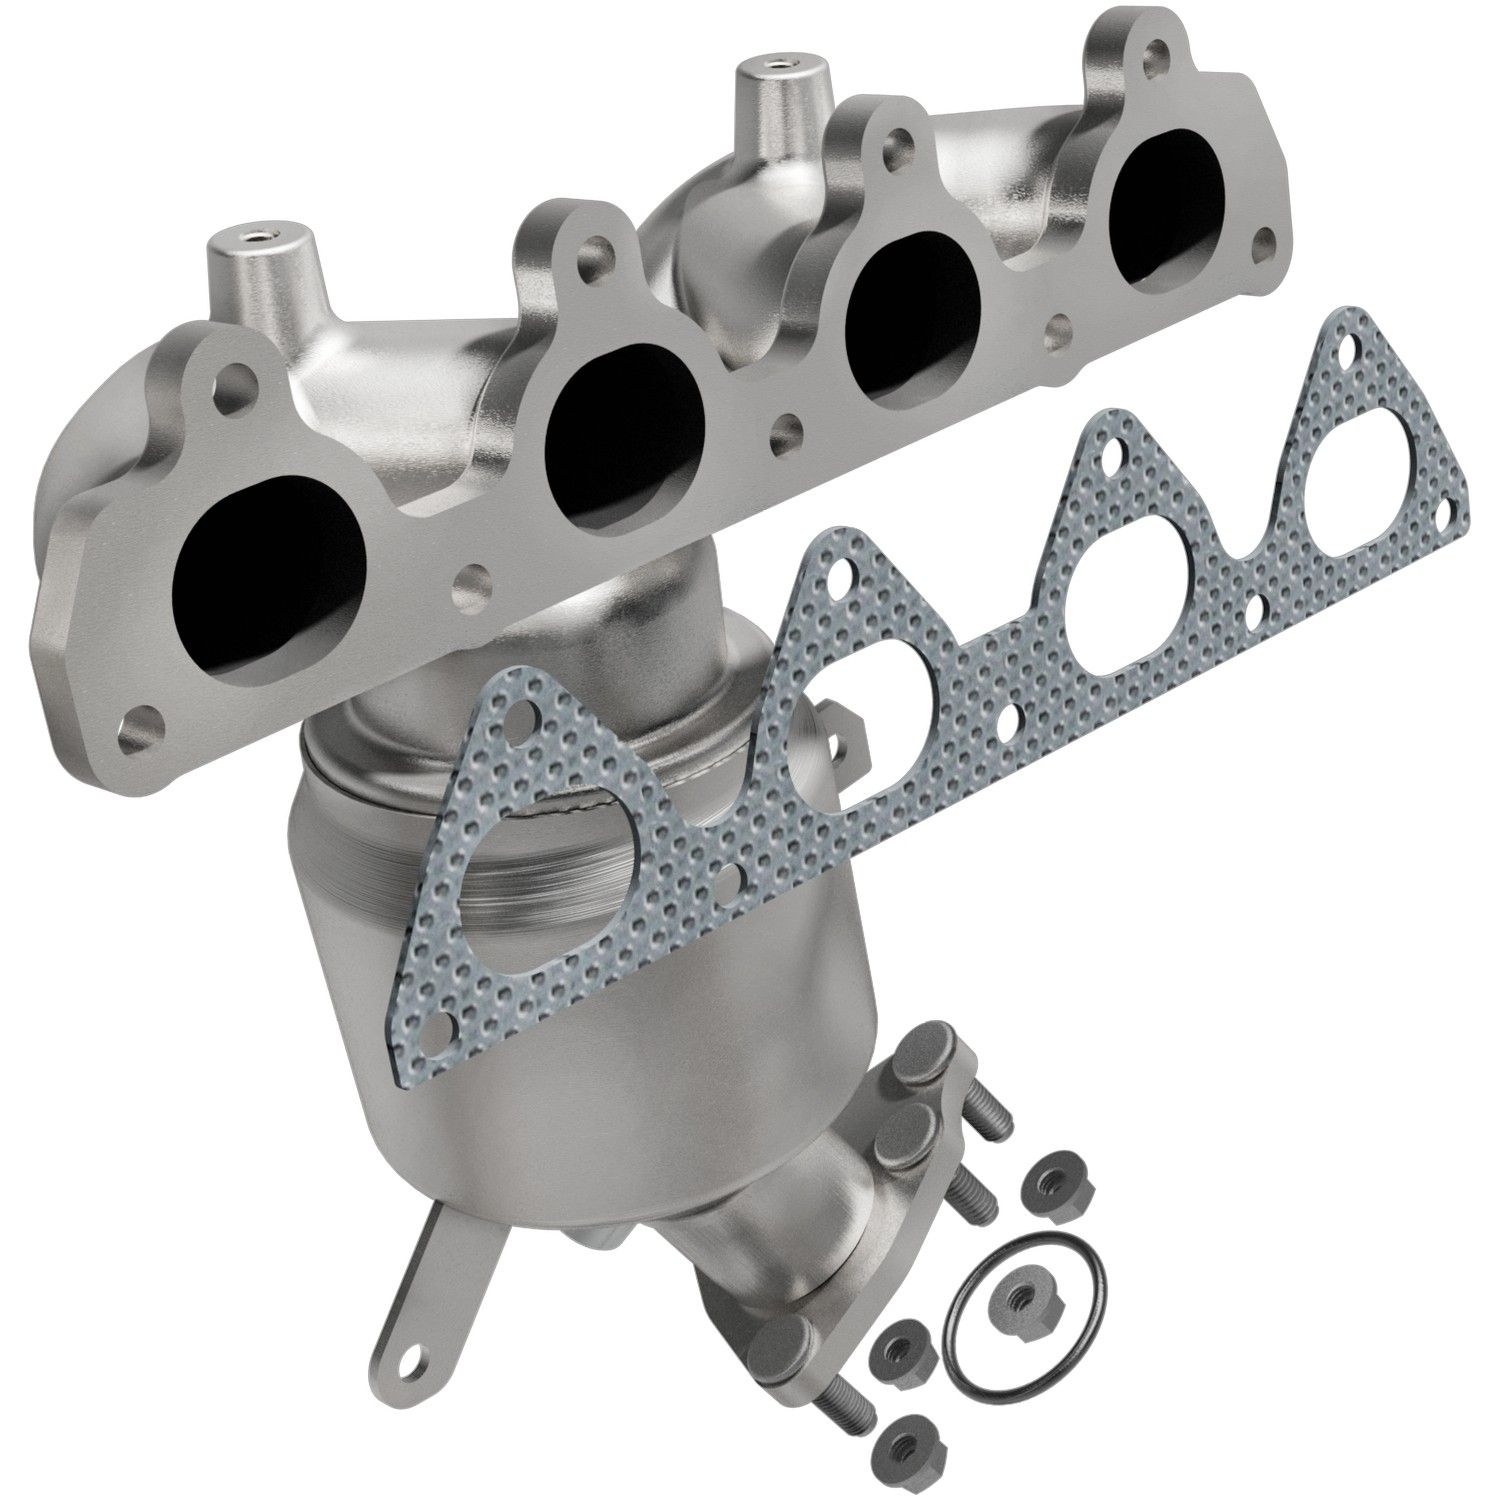 1999 Honda Civic Exhaust Manifold With Integrated Catalytic Converter 4 Cyl  1.6L (Bosal 096 884) Premium Load Between Converter And Front Pipe Not  Legal For ...